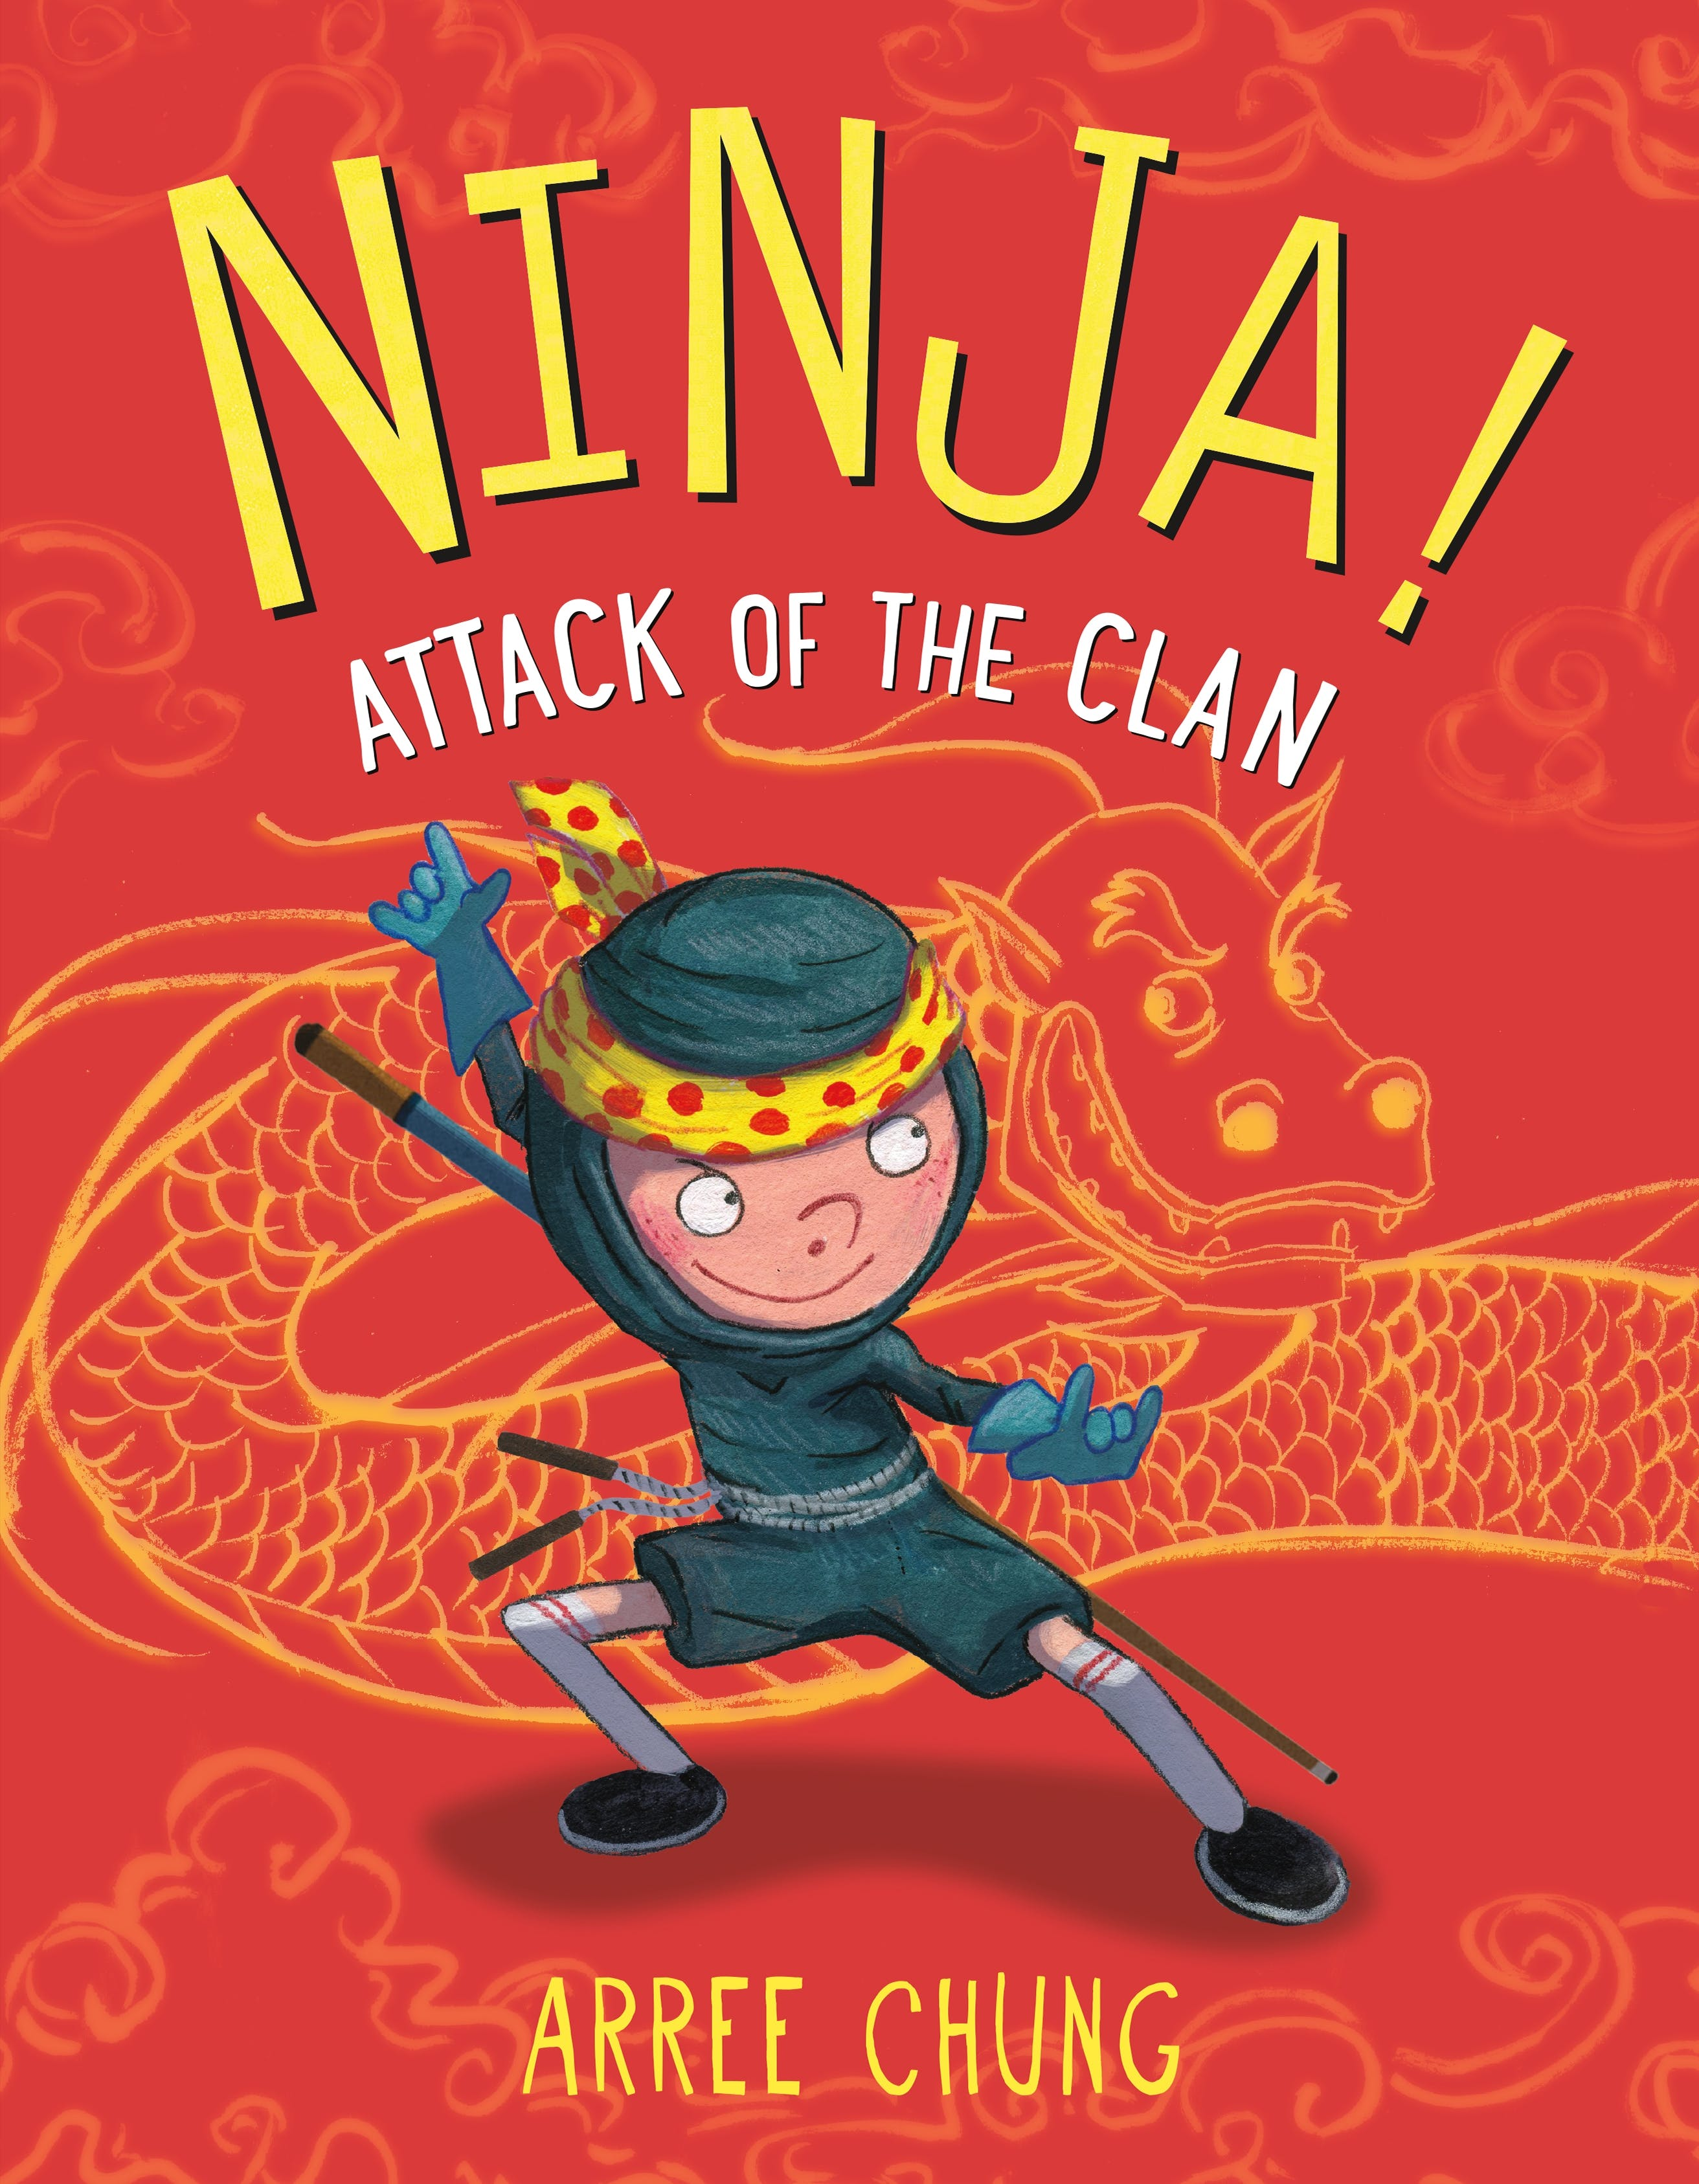 Image of Ninja! Attack of the Clan